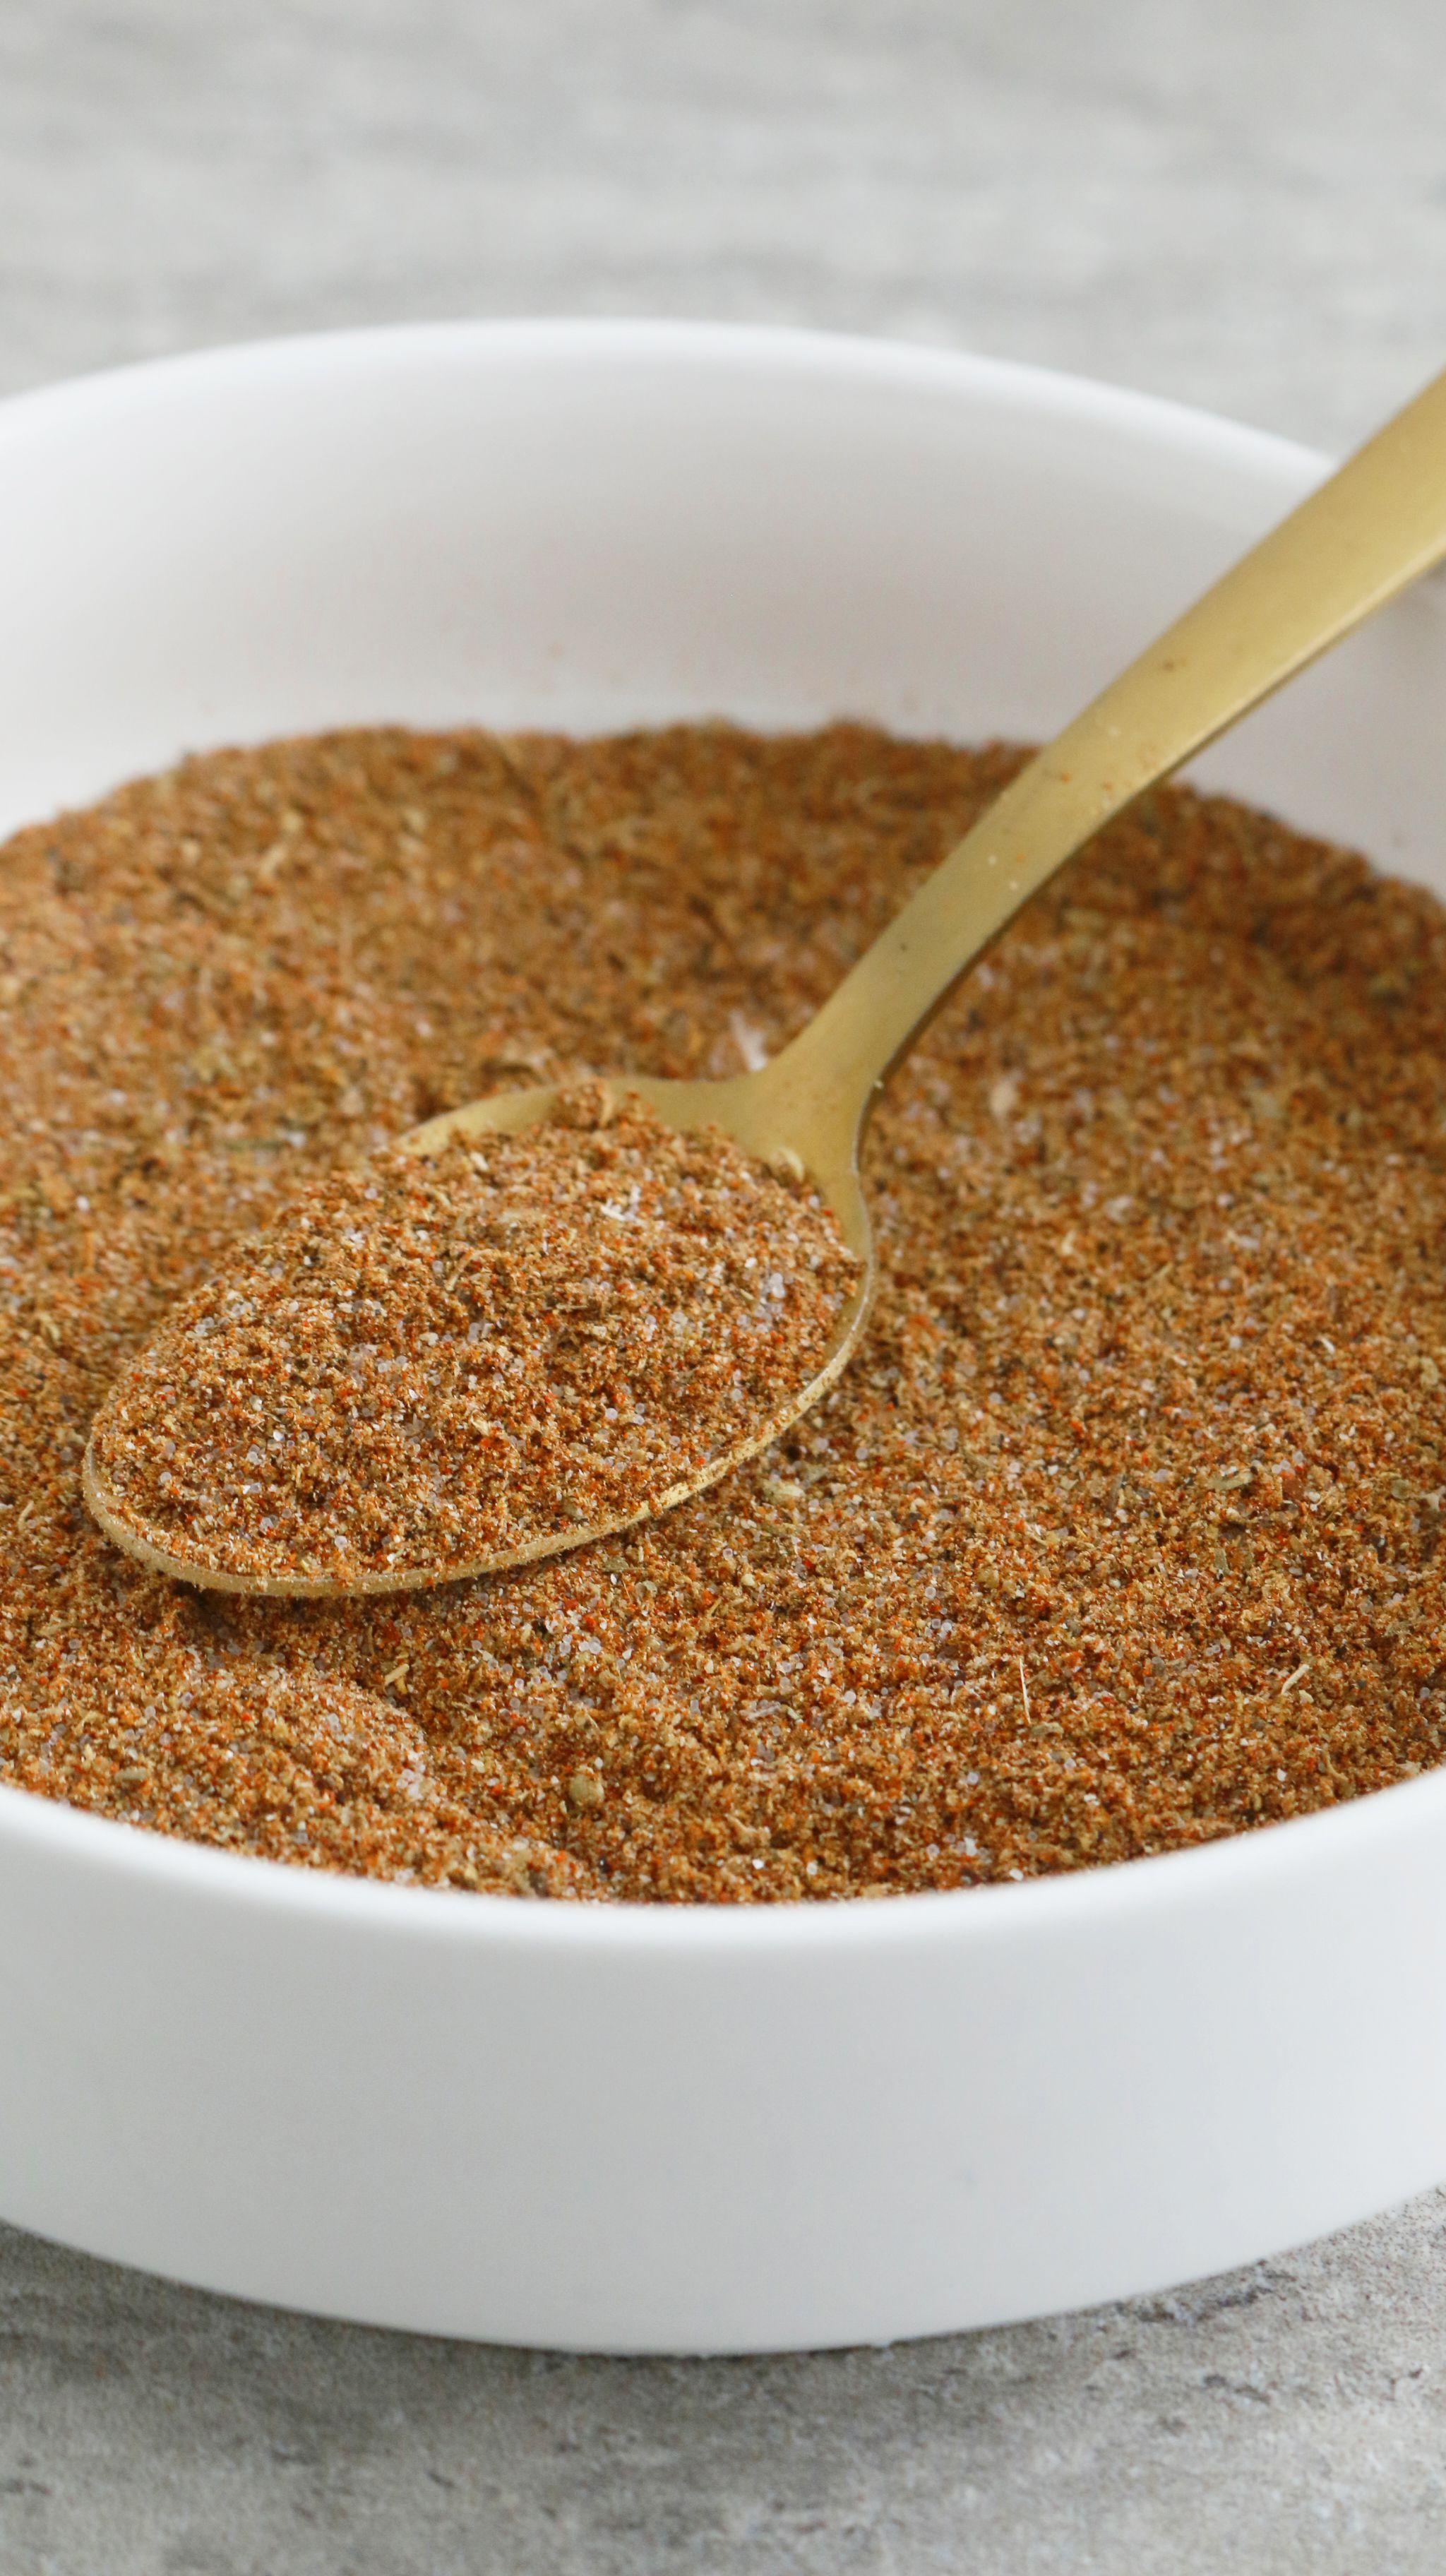 Homemade Chicken Taco Seasoning Kitchen Hoskins Recipe Chicken Taco Seasoning Taco Seasoning Chicken Tacos